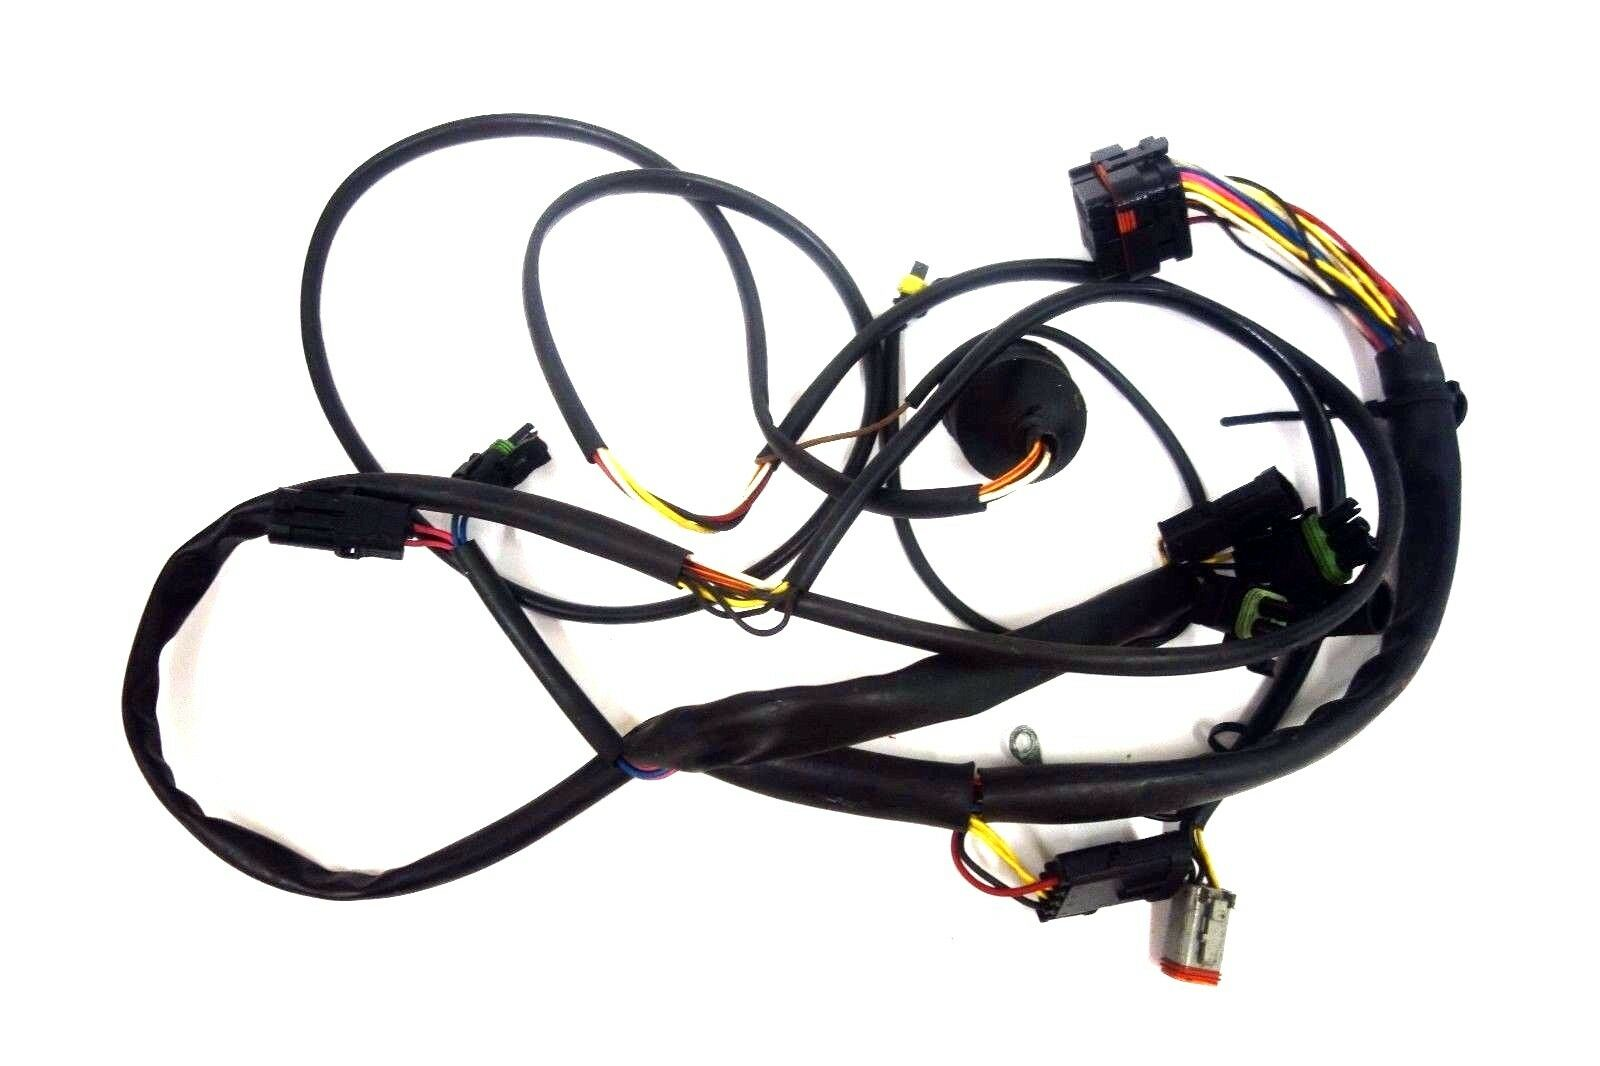 wiring pwc wiring harness pwc image wiring diagram and triton 05595 ltwci c trailer wire harness triton 05595 hanna further playcraft pontoon wiring harness wire